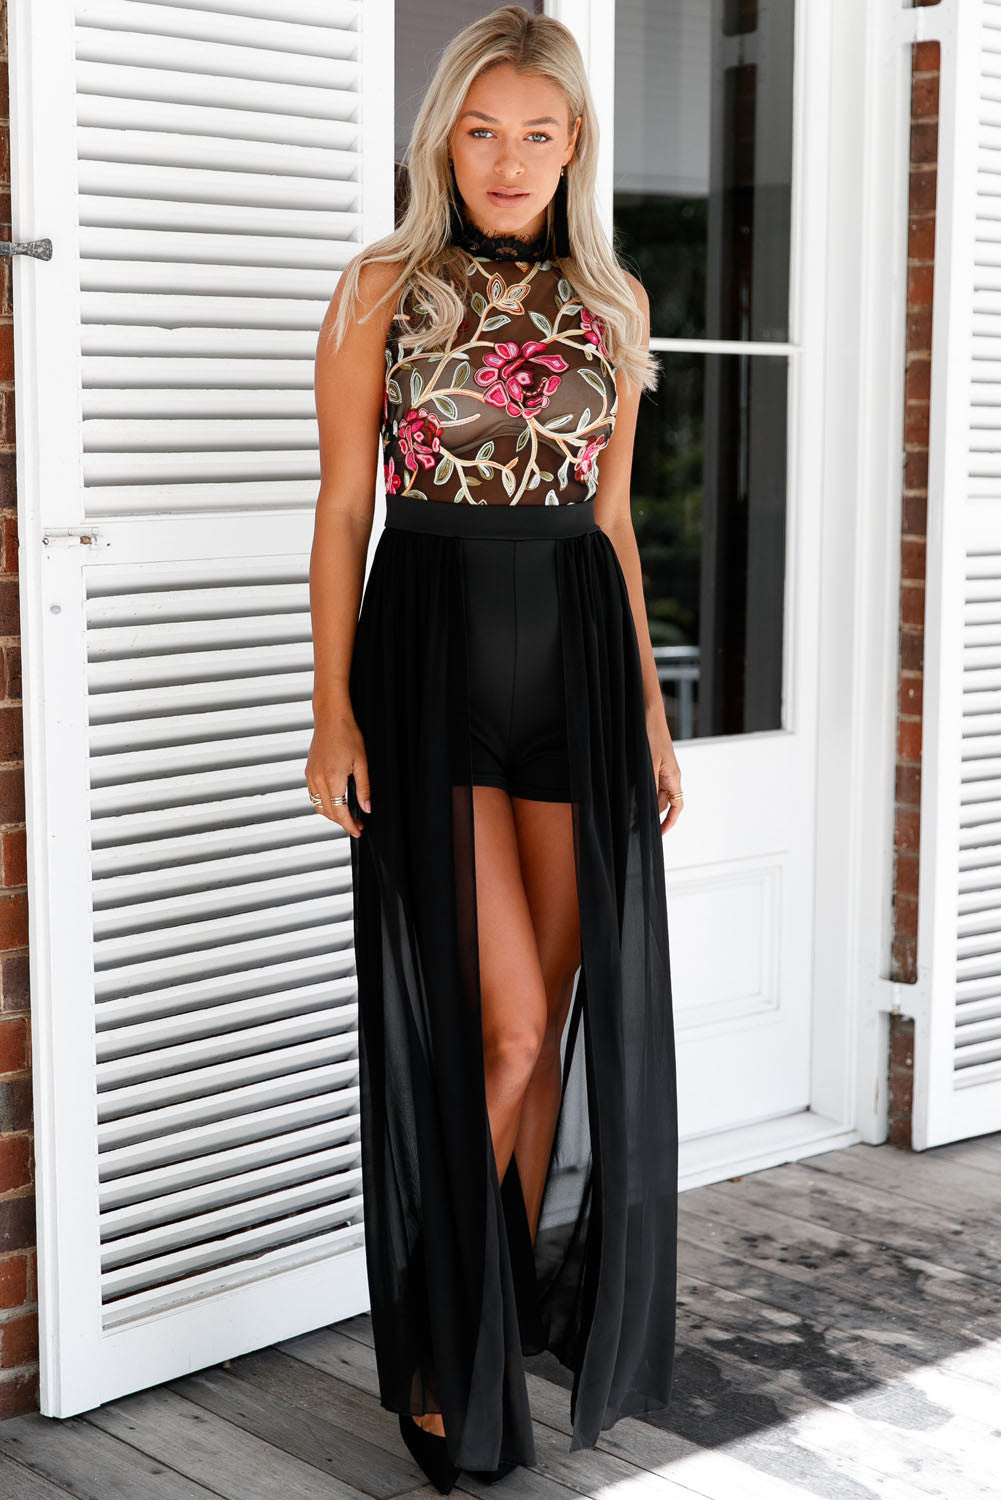 Her Snazzy Black Sheer Mesh Embroidery Chiffon Romper Maxi Dress